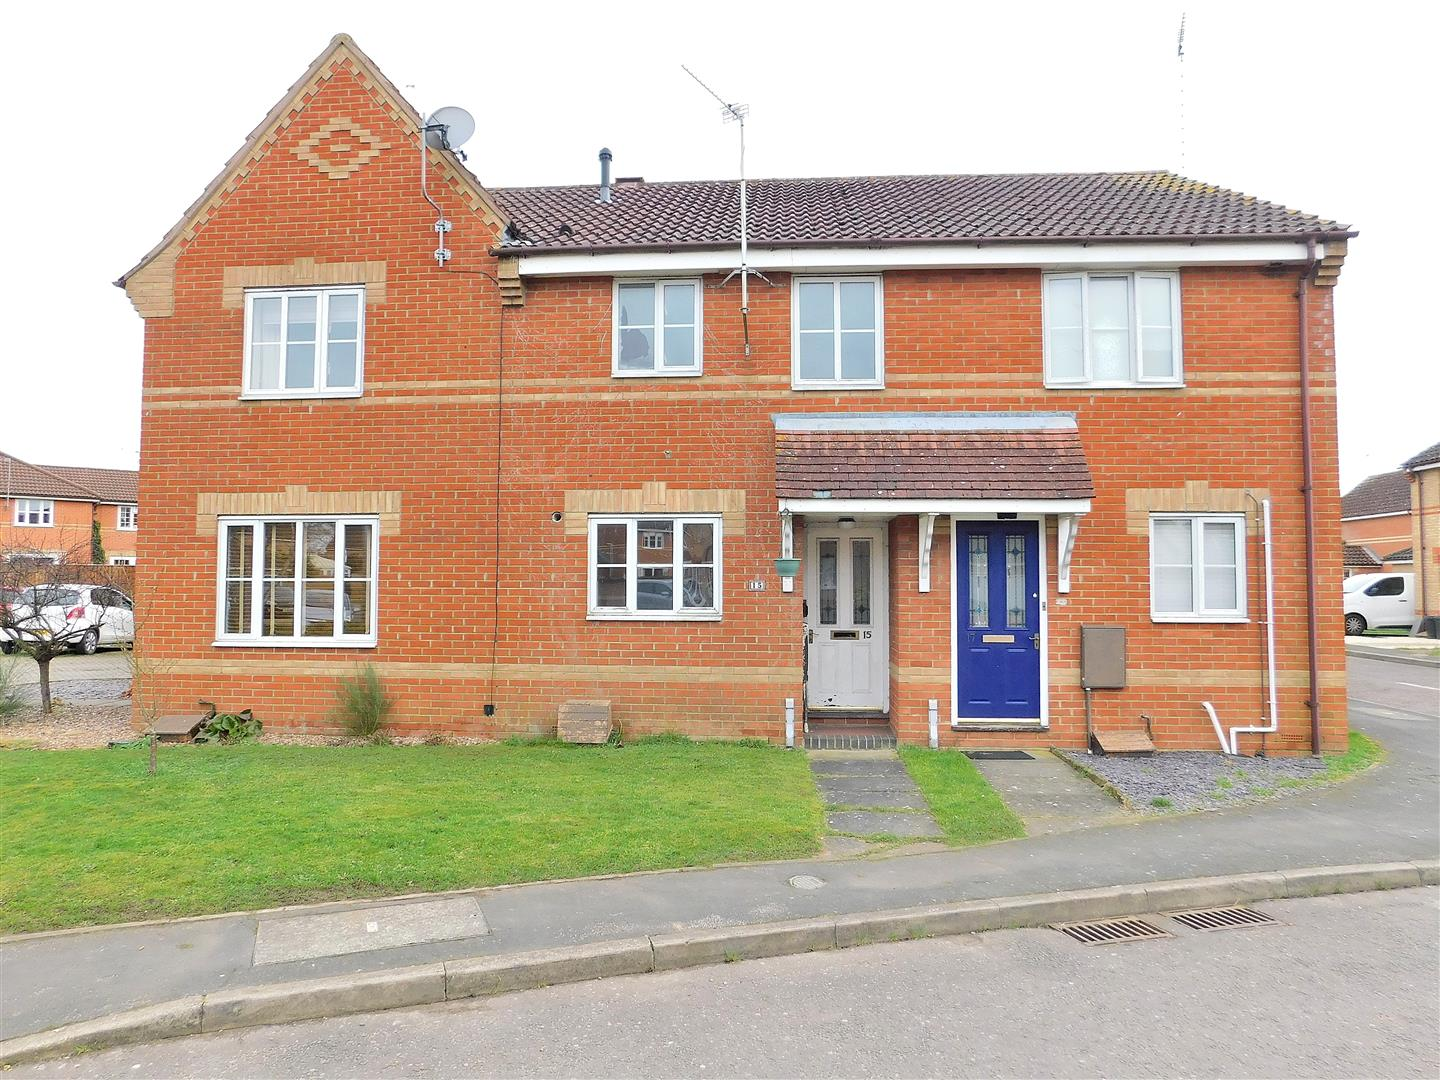 2 bed terraced house for sale in Weedon Way, King's Lynn, PE30